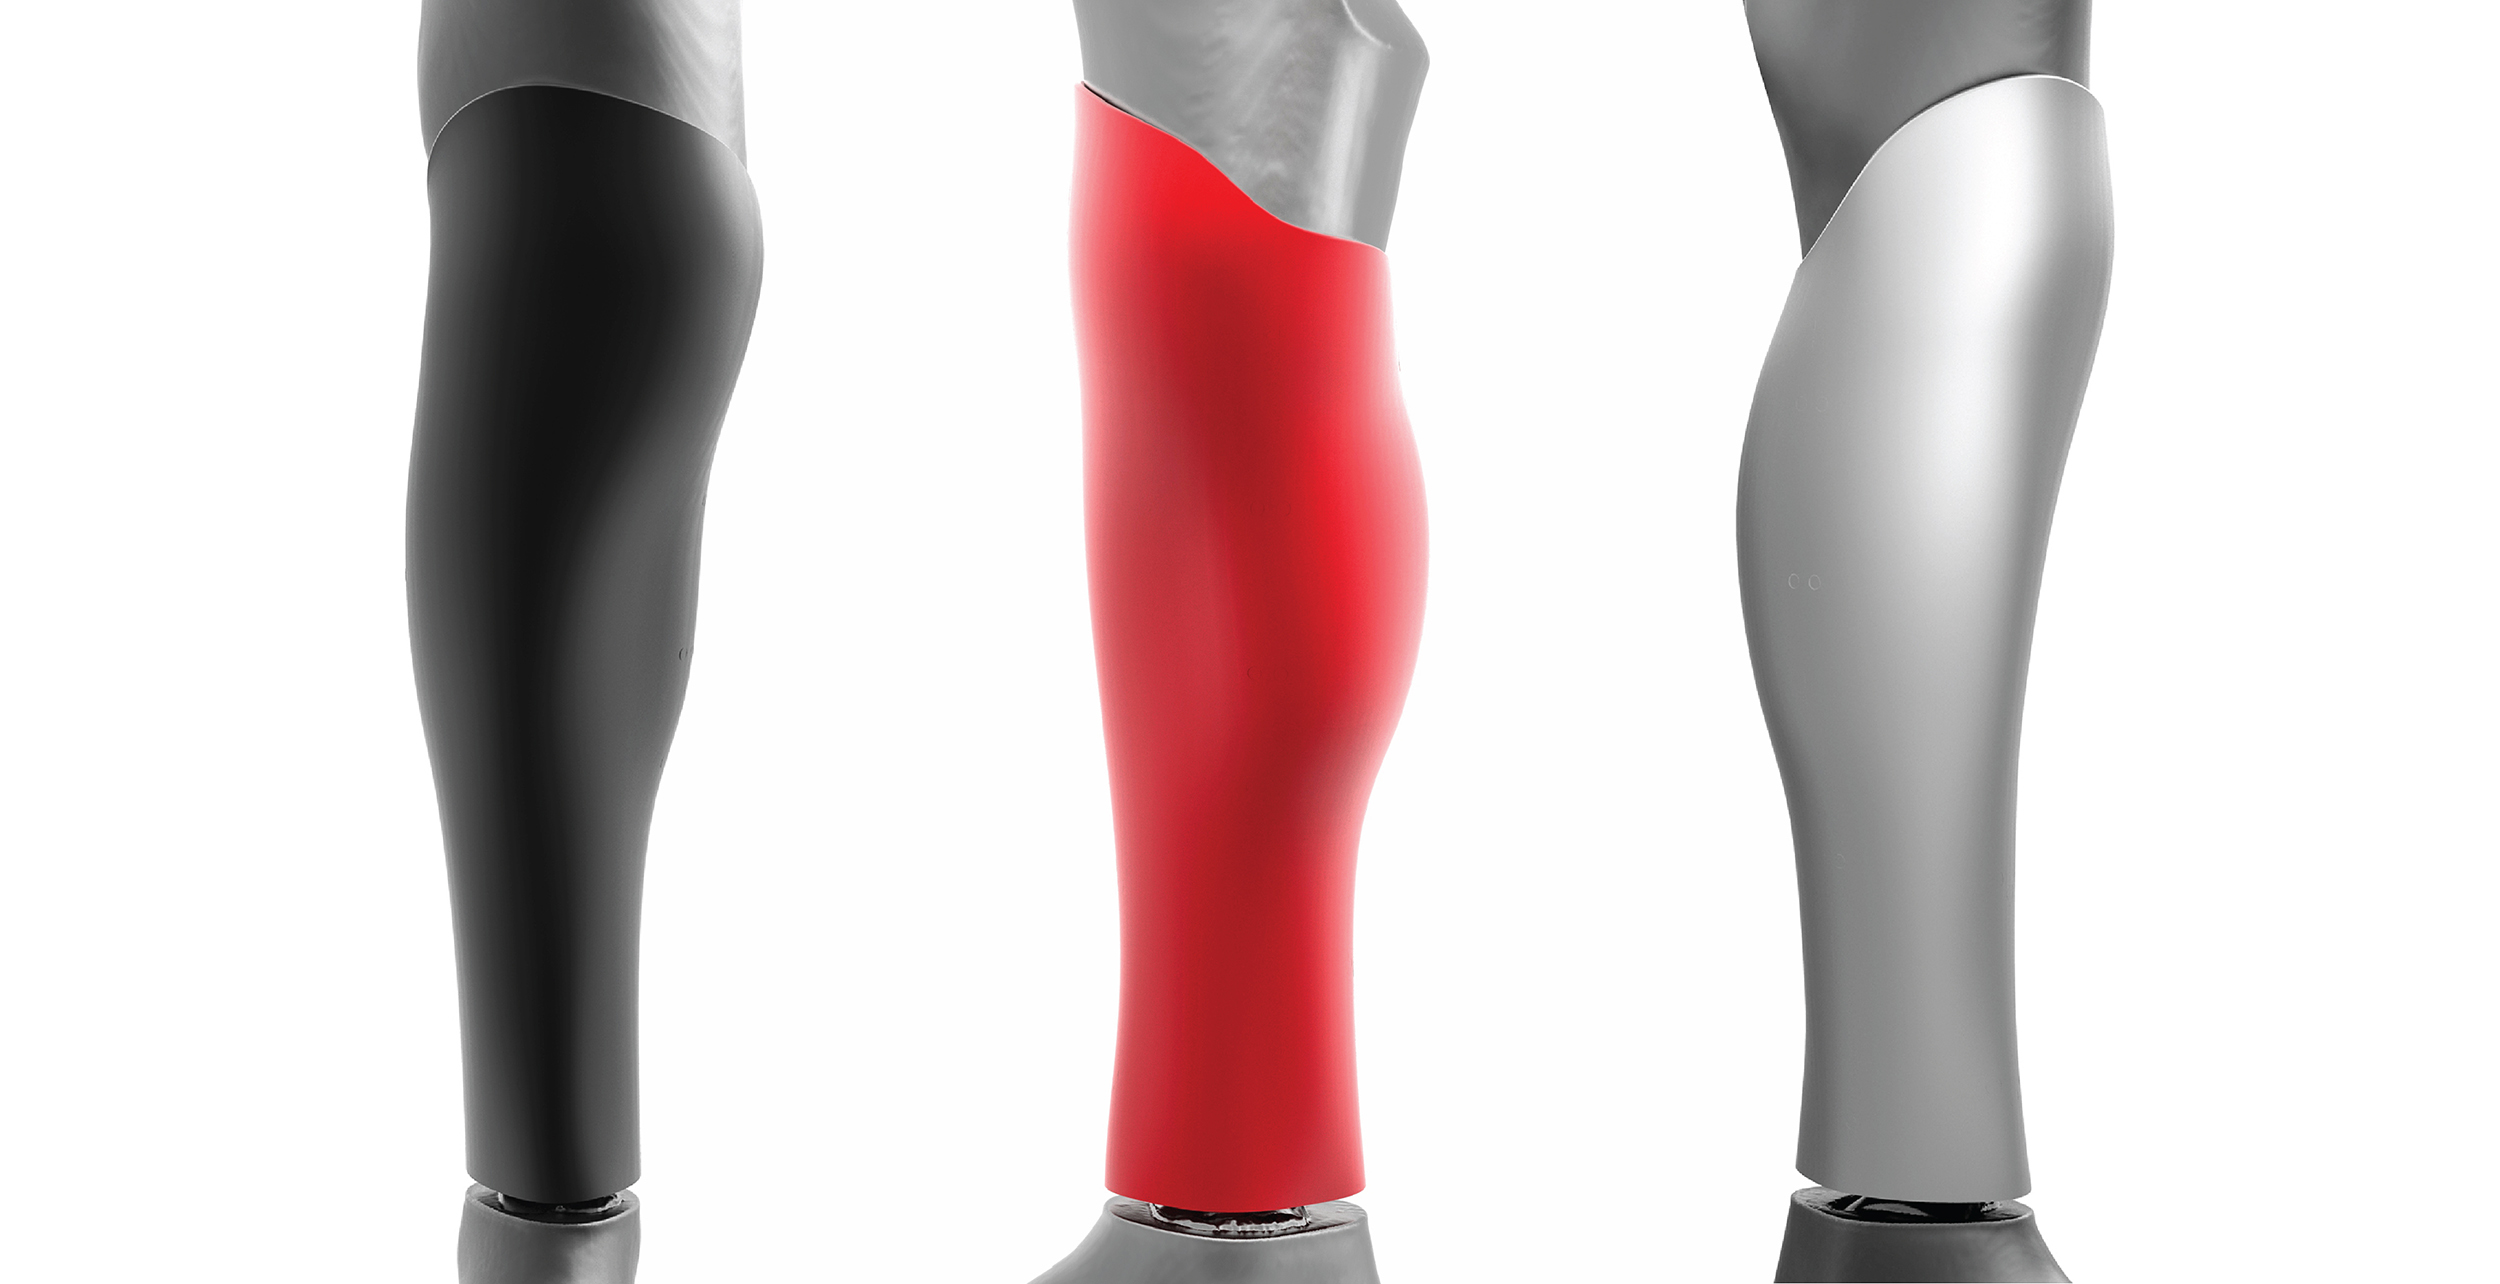 Copy of Customized shape for below-the-knee prosthesis